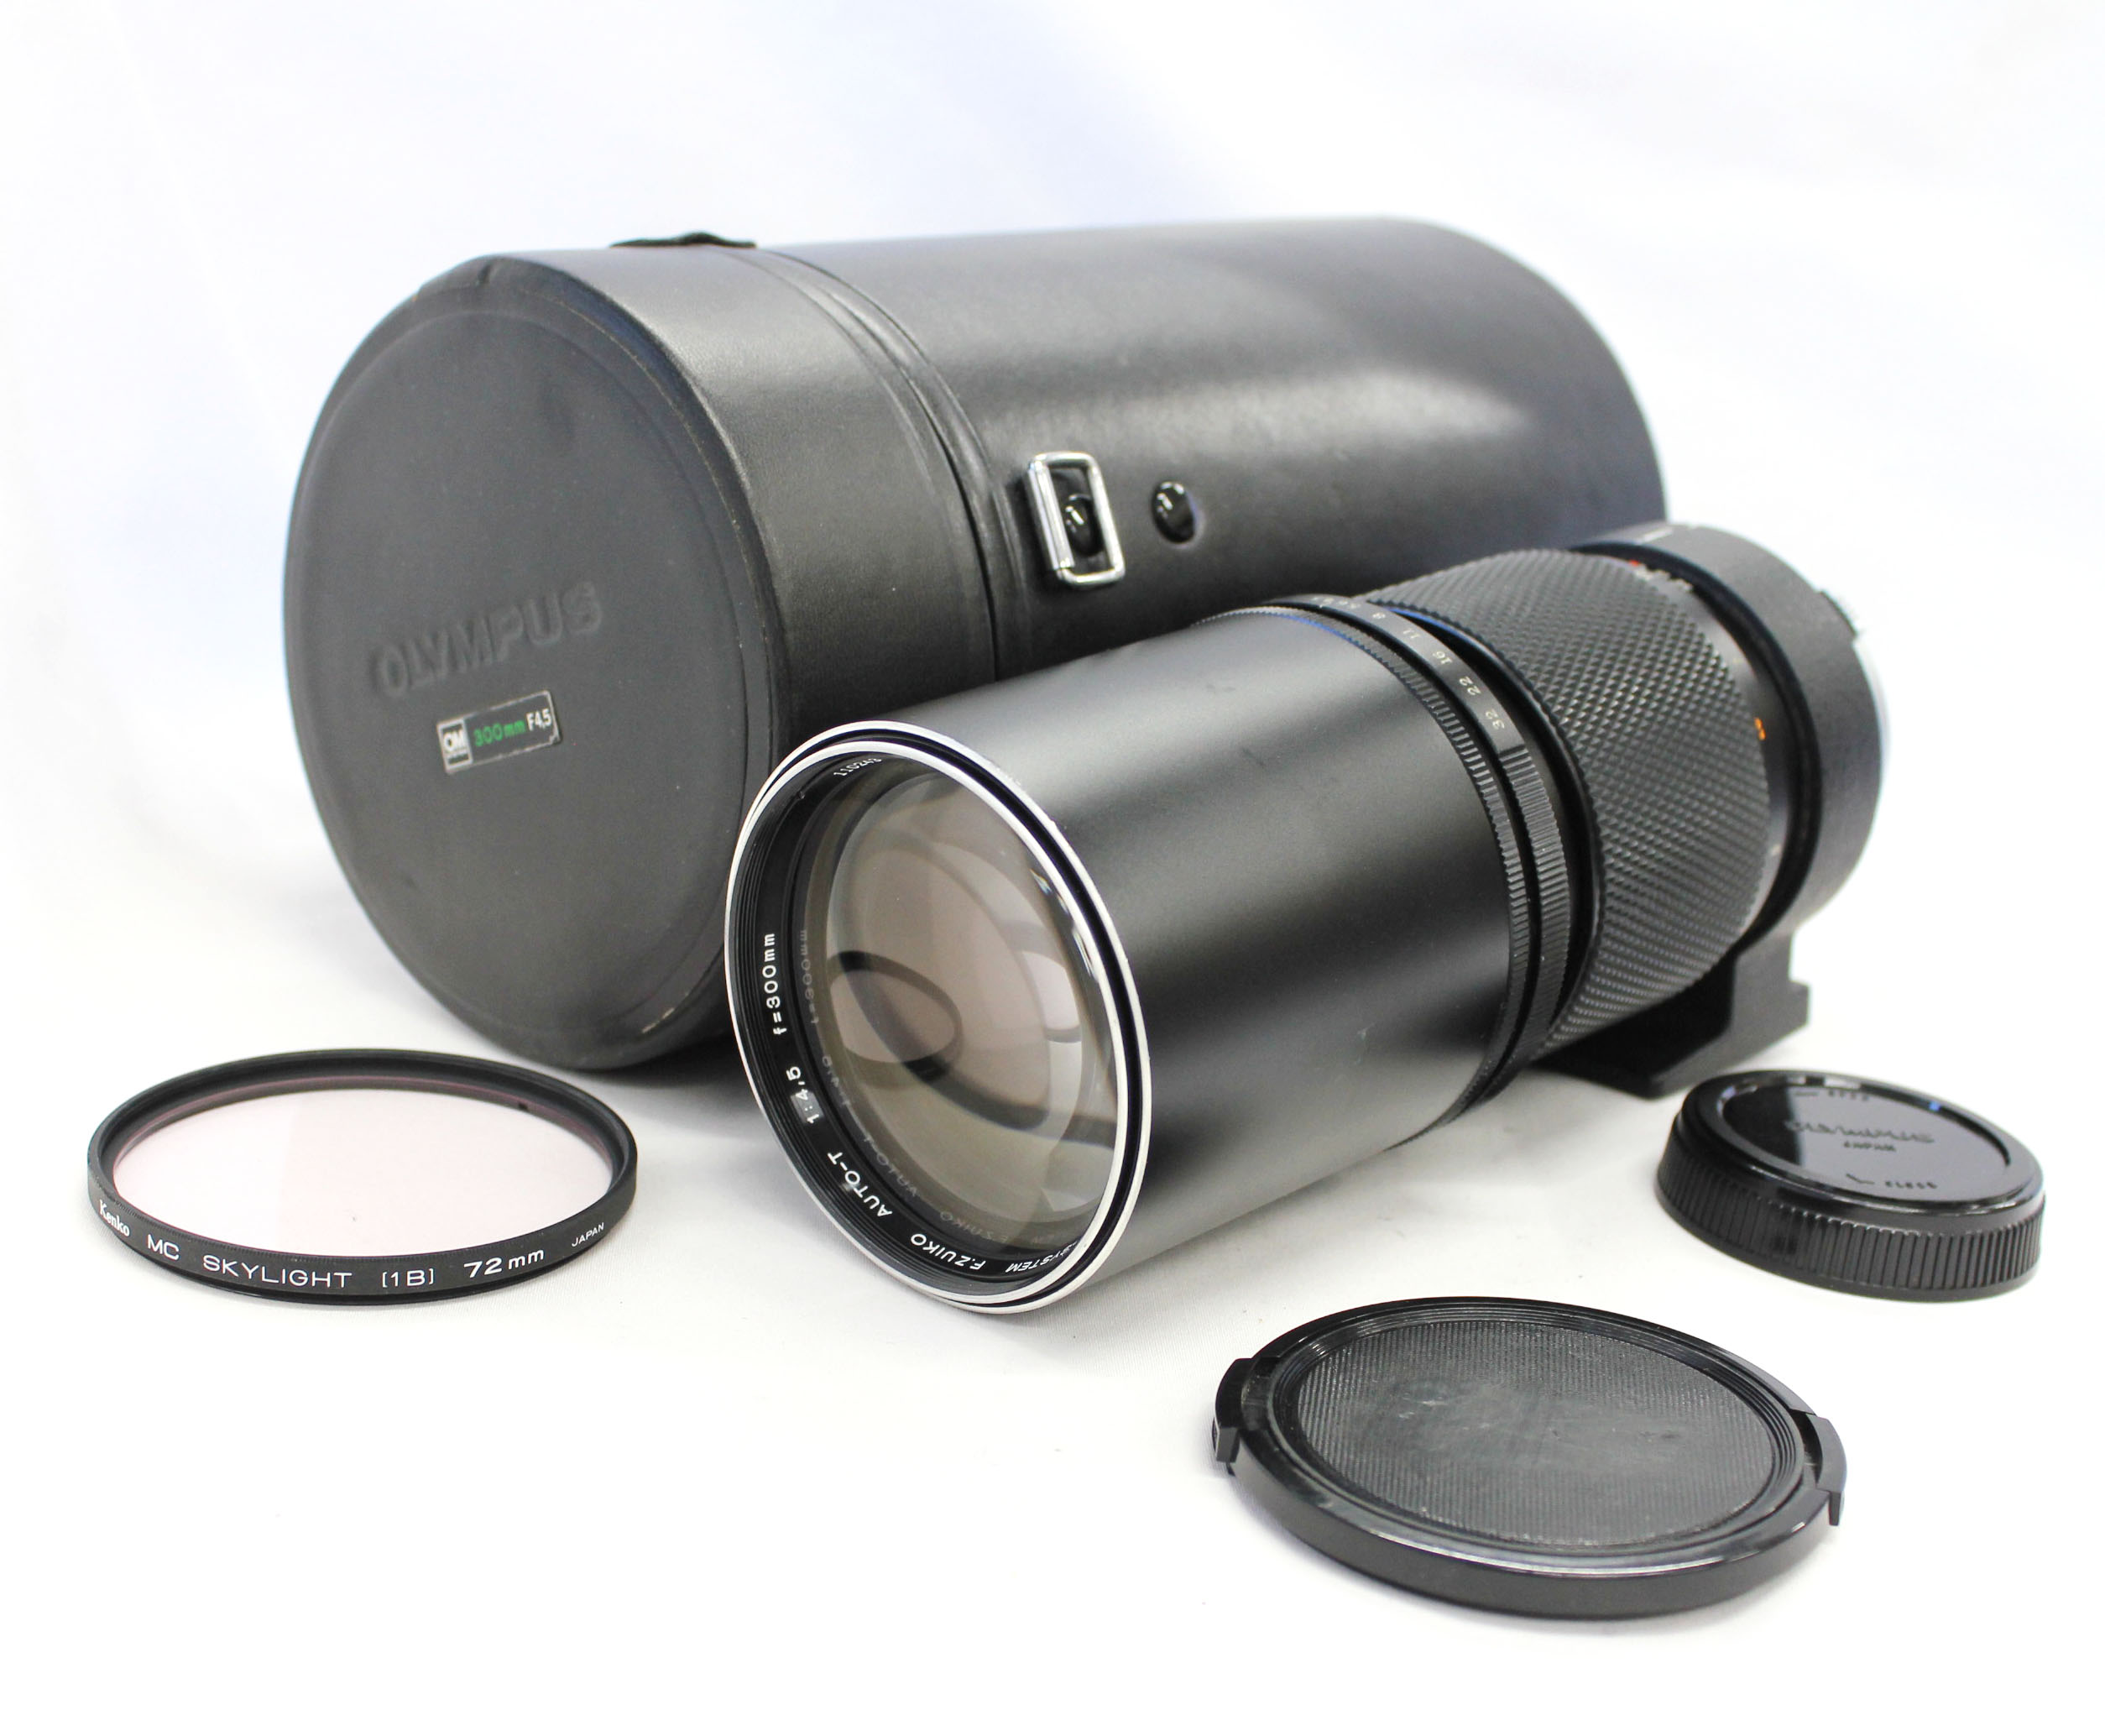 Japan Used Camera Shop | [Near Mint] Olympus OM-System F.Zuiko Auto-T 300mm F/4.5 MF Telephoto Lens from Japan